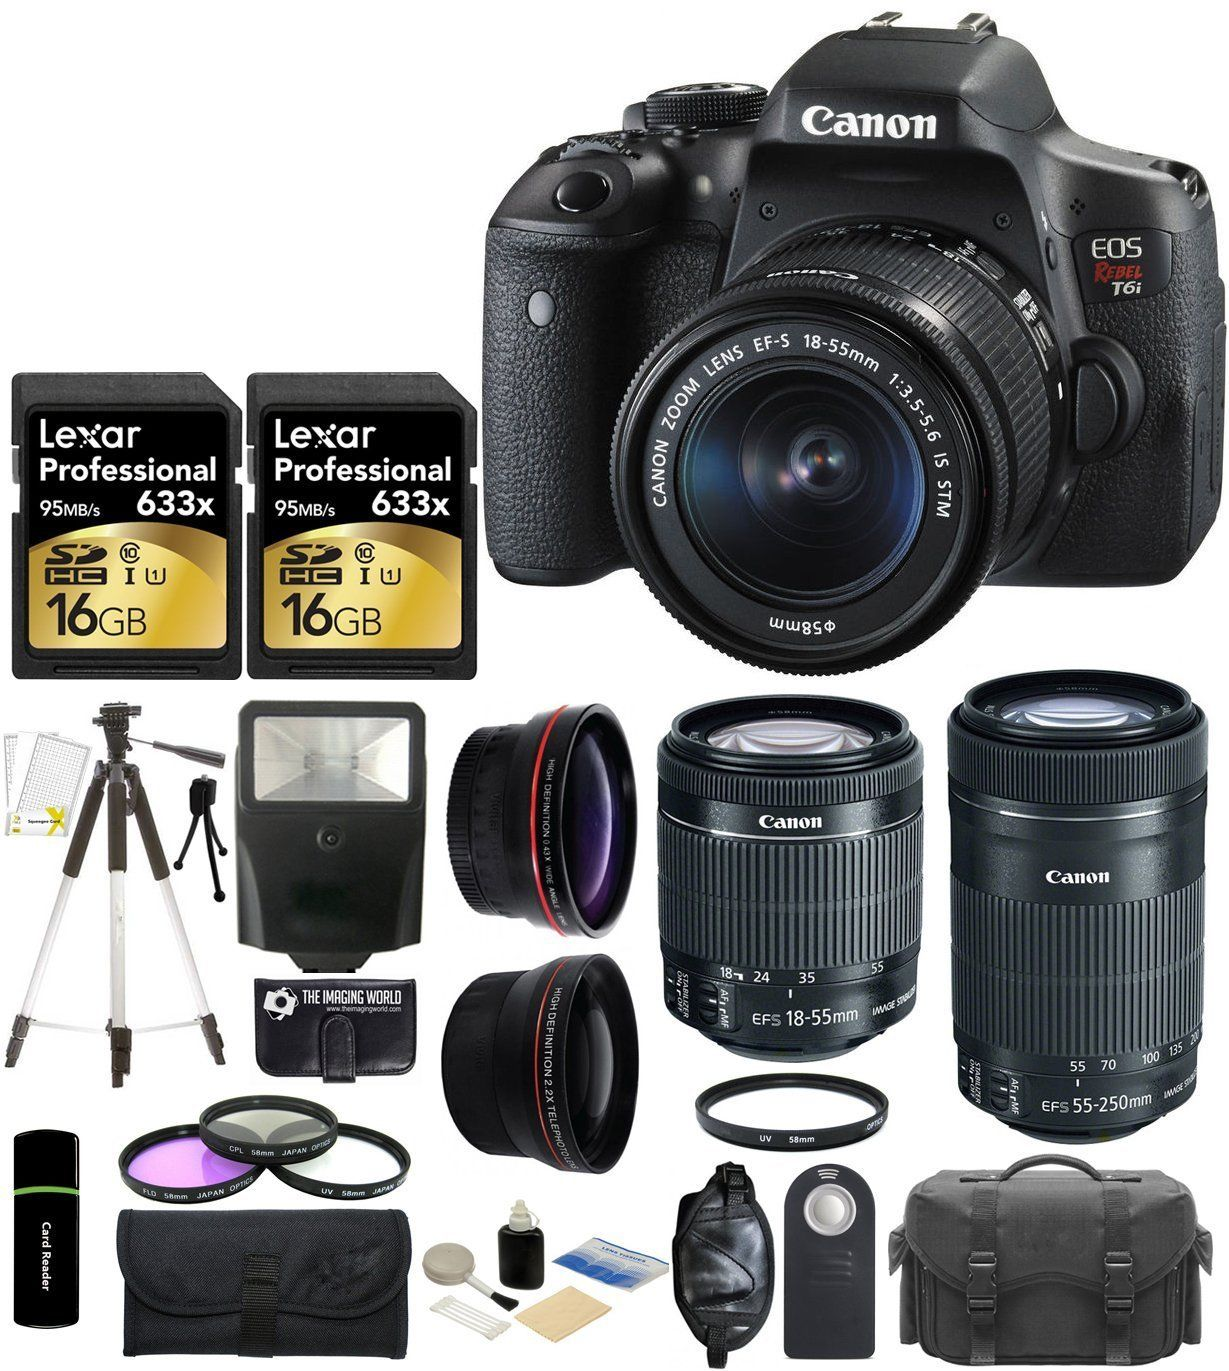 Canon EOS Rebel T6i 24.2MP Digital SLR Camera with EF-S 18-55mm IS STM Lens + EF-S 55-250mm IS STM Lens + Telephoto + Wide Angle Lens + Case + Flash + Grip + Tripod + Lexar 32GB Accessories Bundle